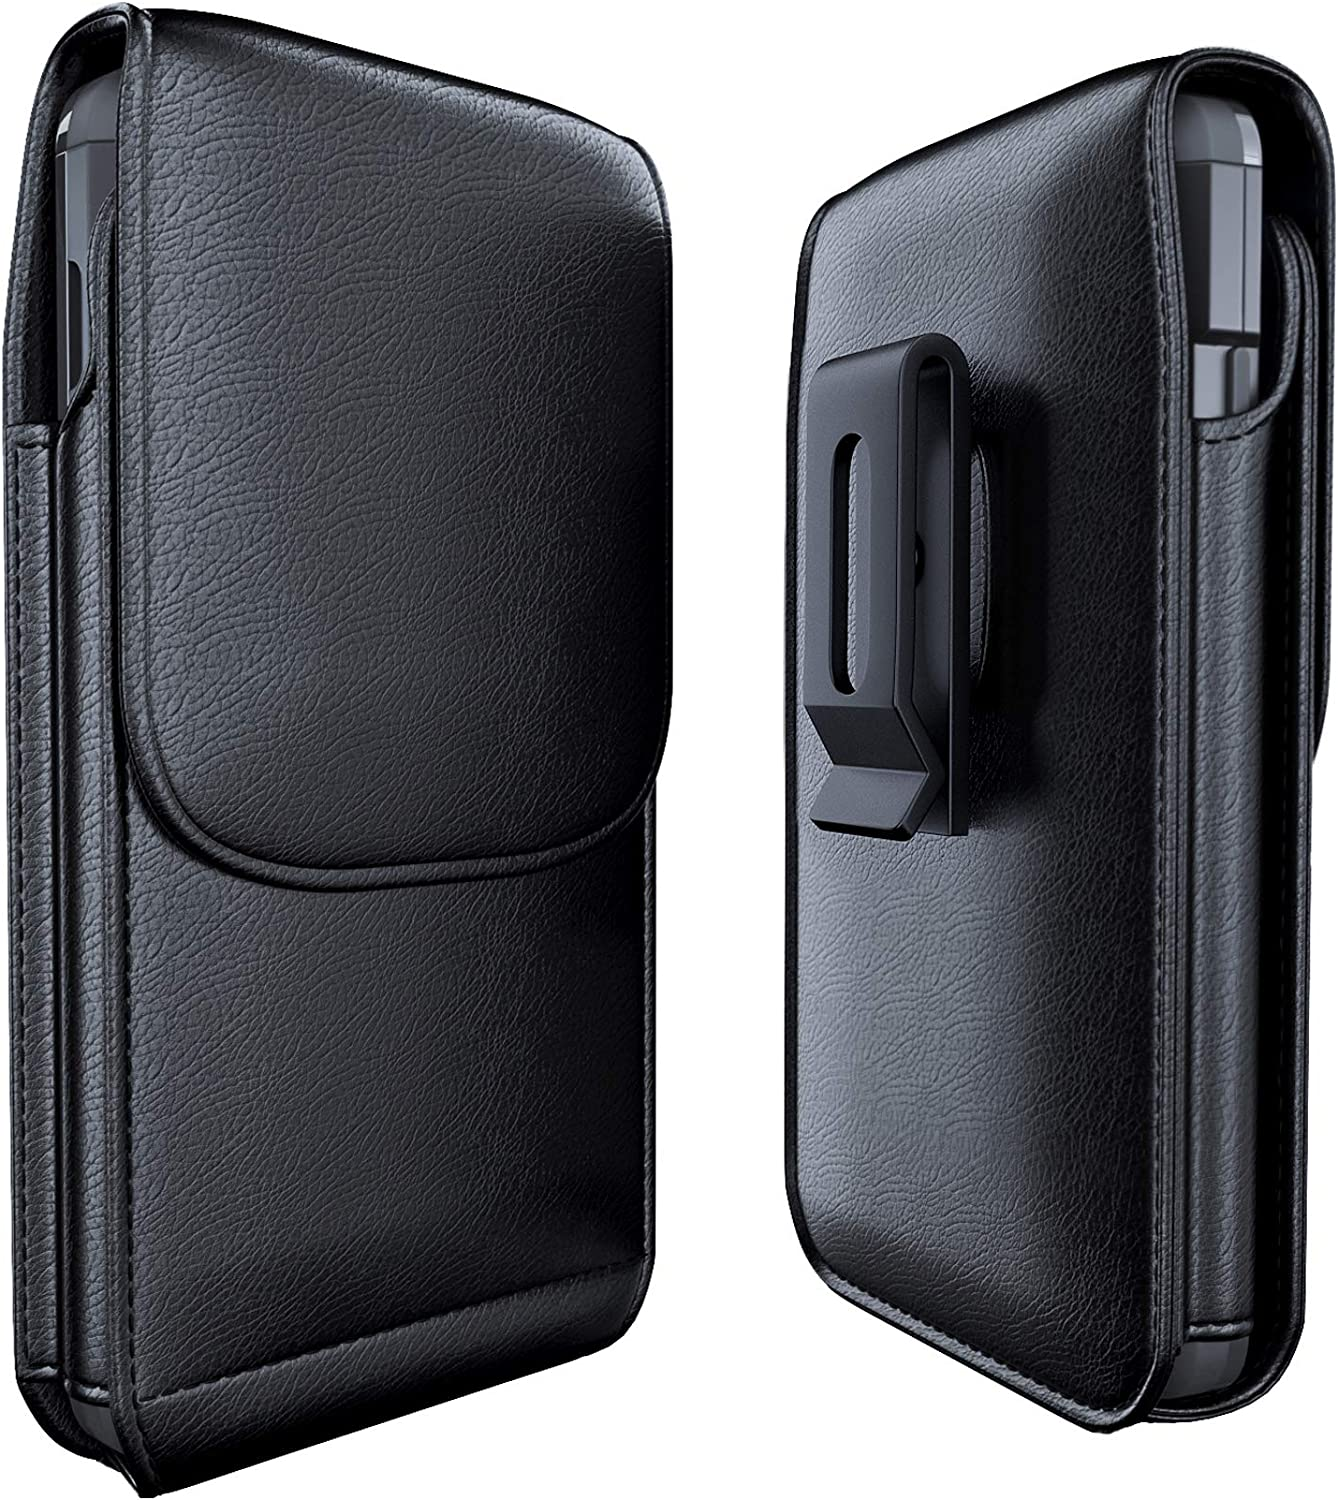 Meilib Phone Holder Case Designed for iPhone 11 Pro (2019) Belt Holster, iPhone X / Xs/ 10 Belt Case with Swivel Belt Clip Cell Phone Holster Belt Pouch Cover Fits Apple iPhone with Cases on - Black